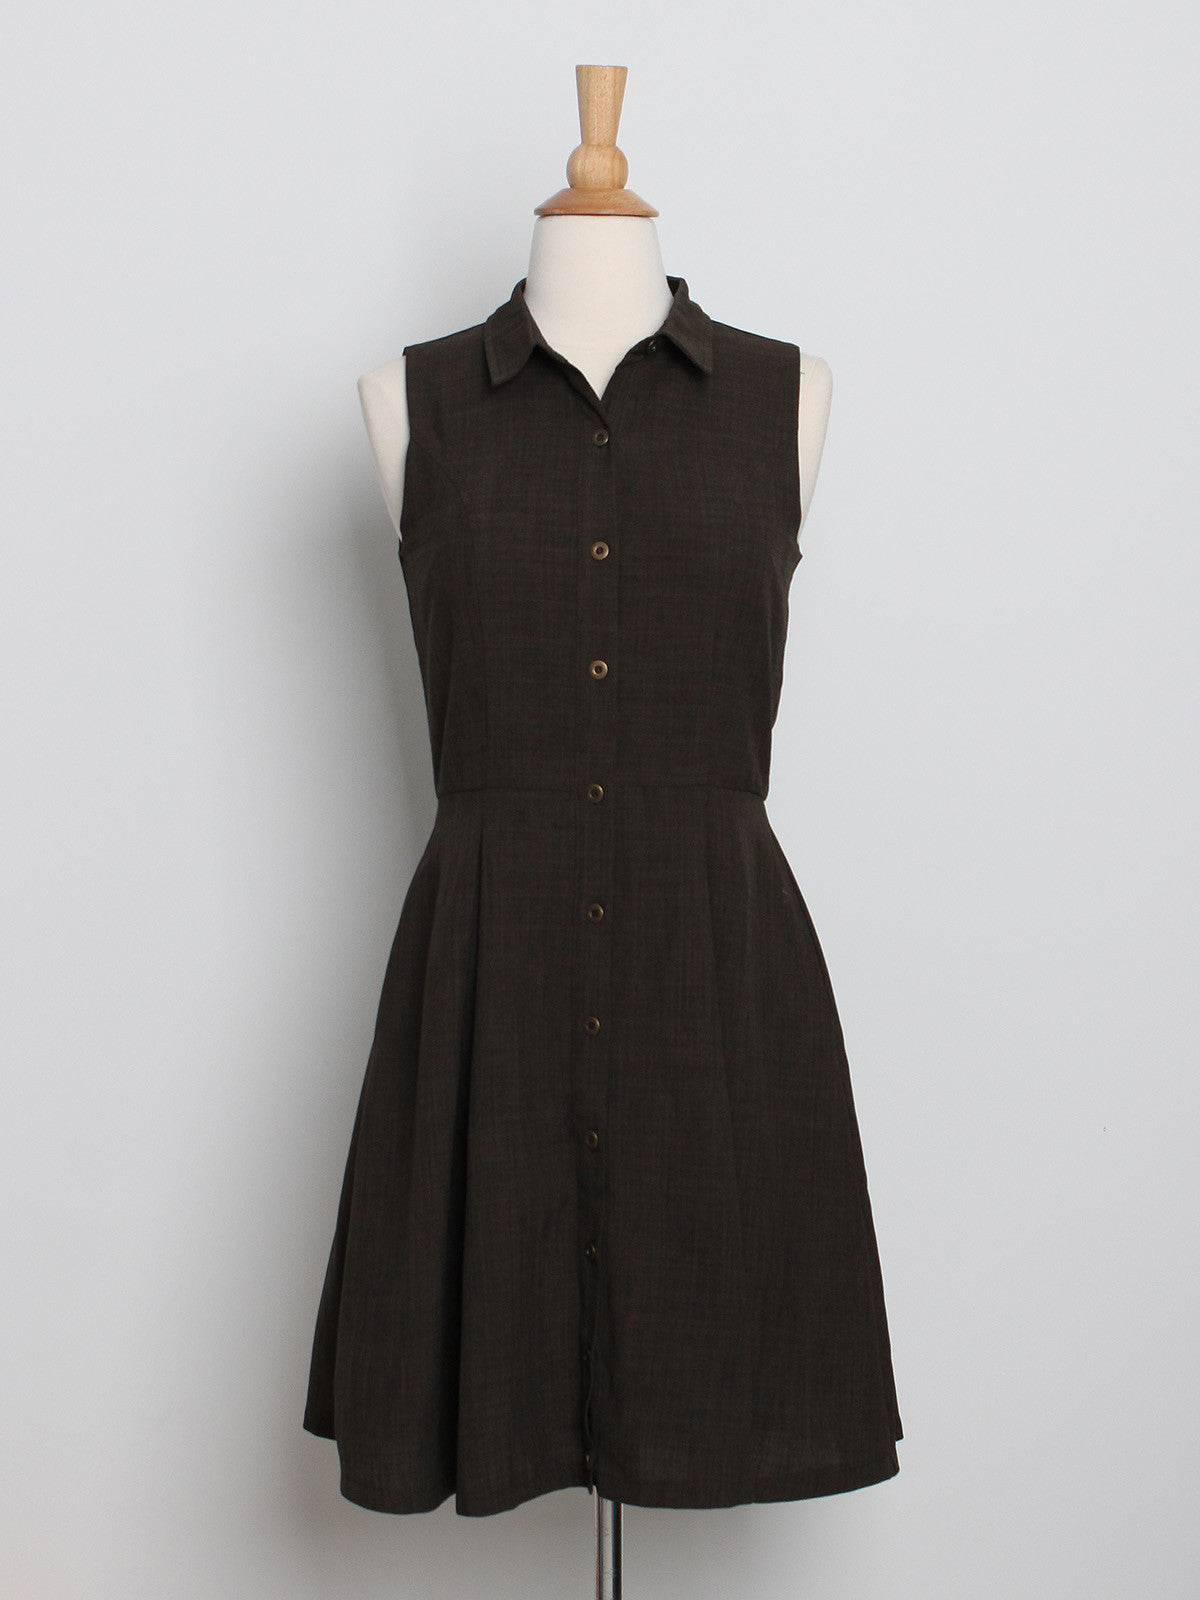 Jemma Button Down Shirt Dress Olive